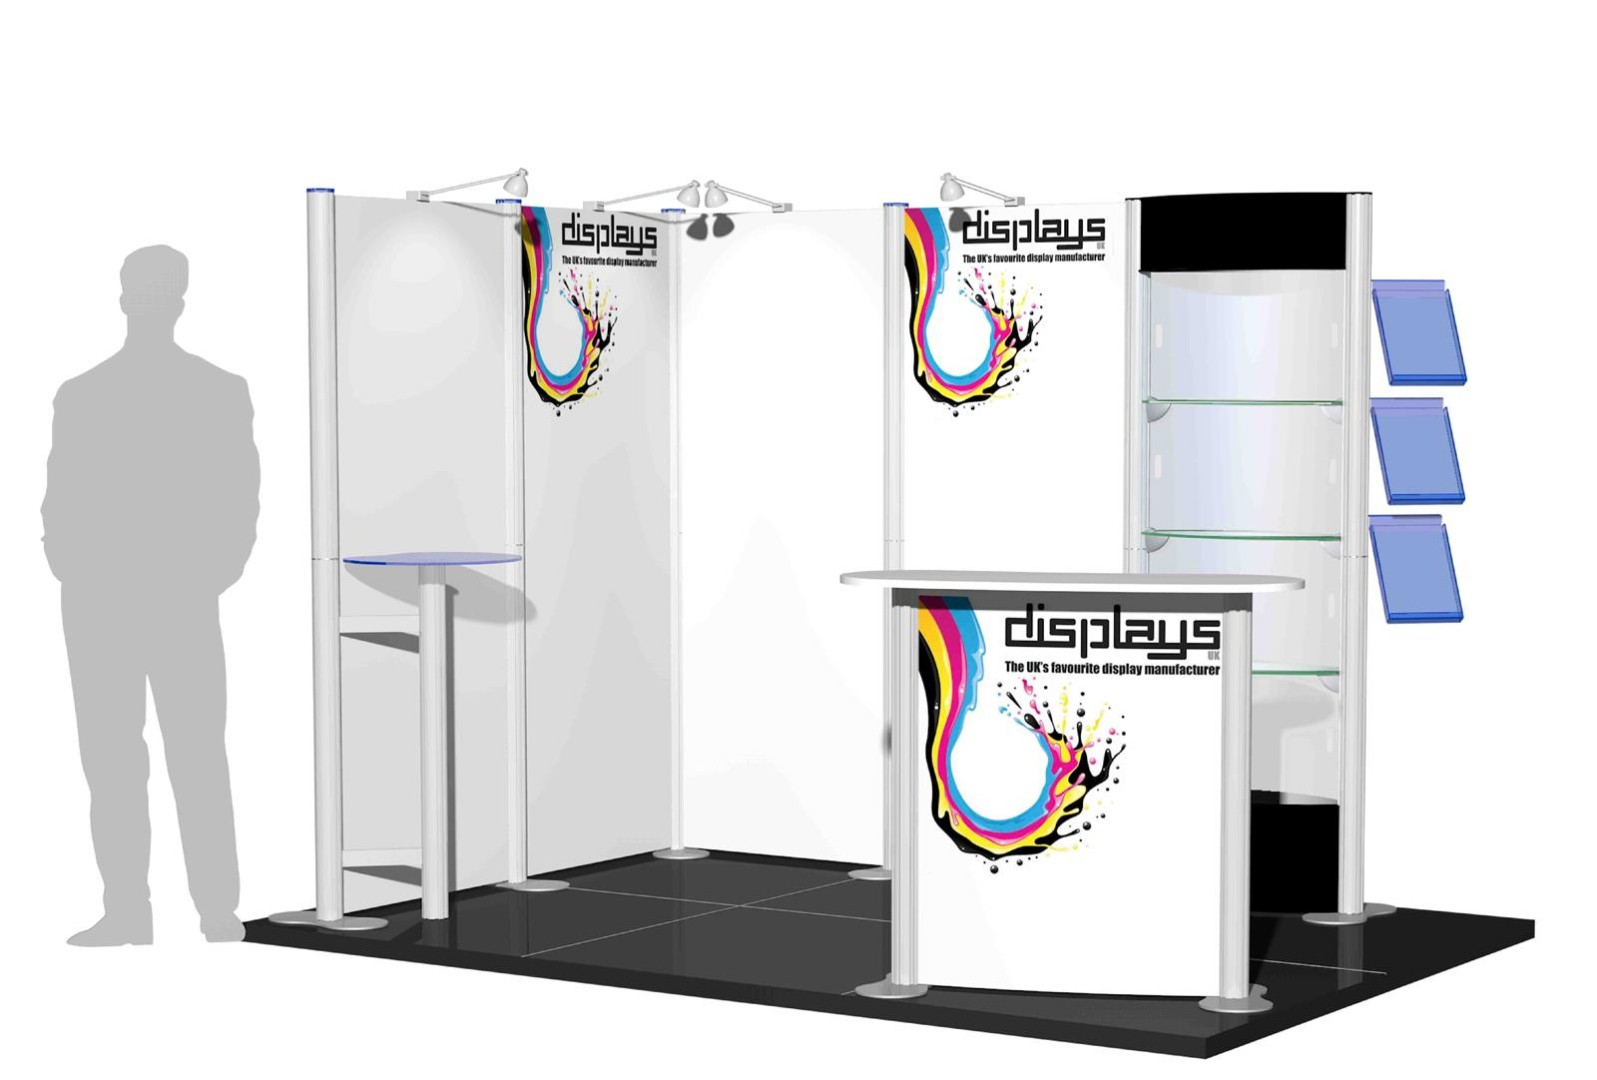 Centro 3m x 2m Modular Exhibition Stand - C3x2-2a